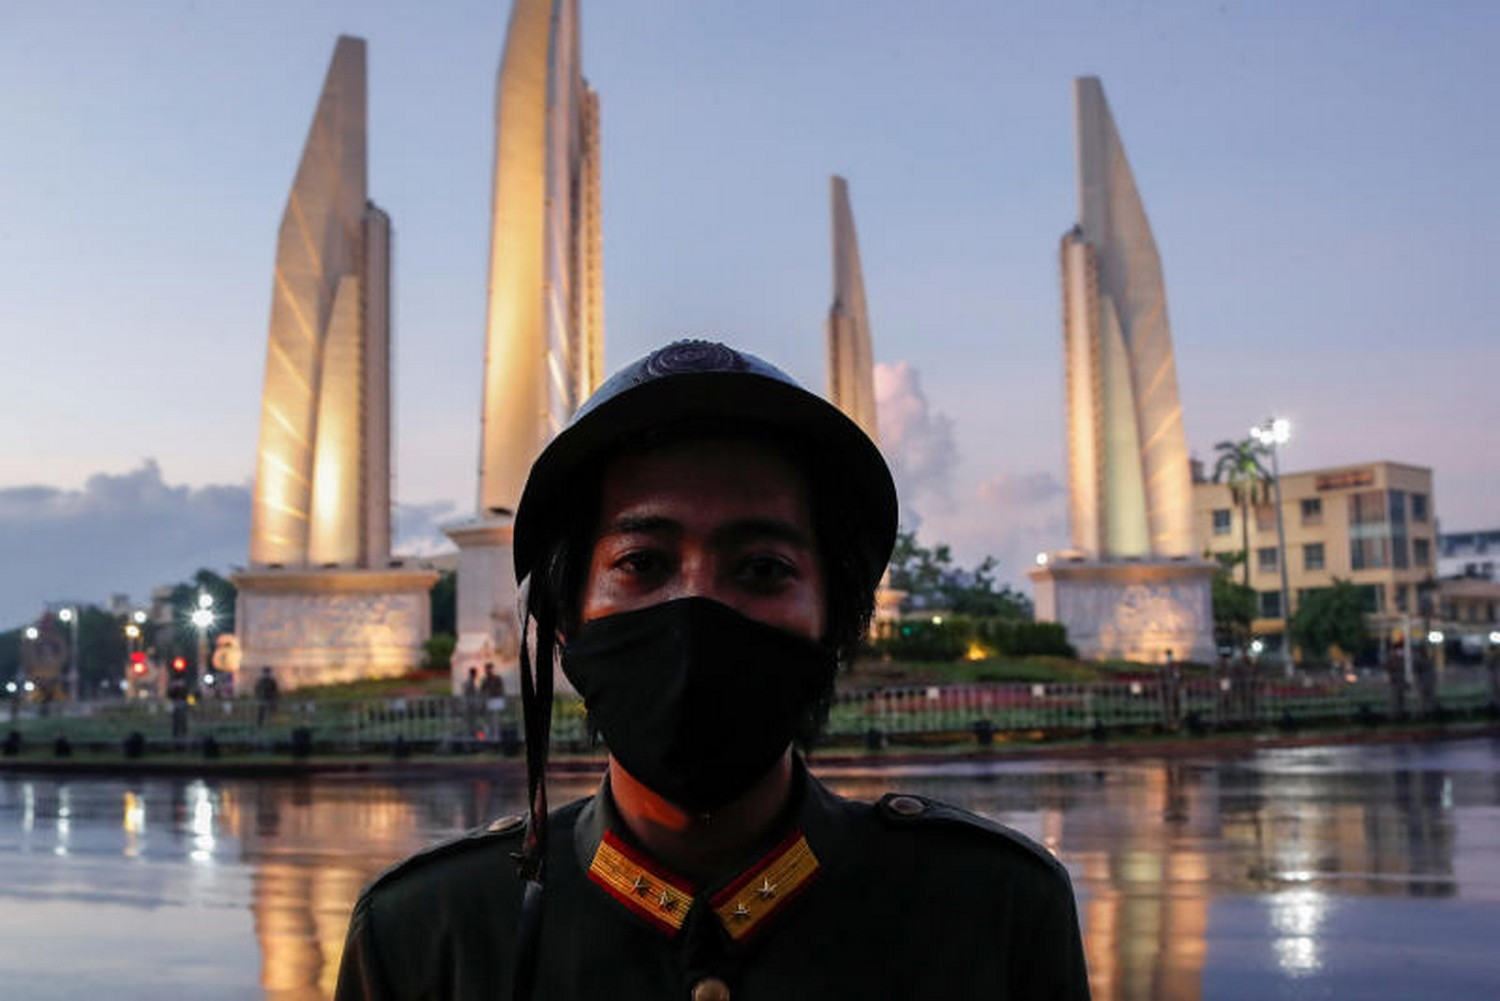 A protester dressed as a 1932 soldier takes part in a demonstration in front of the Democracy Monument in Bangkok on Wednesday, demanding changes to the constitution and marking the 88th anniversary of the 1932 revolt that ended the absolute monarchy in the country. (Photo: Reuters)